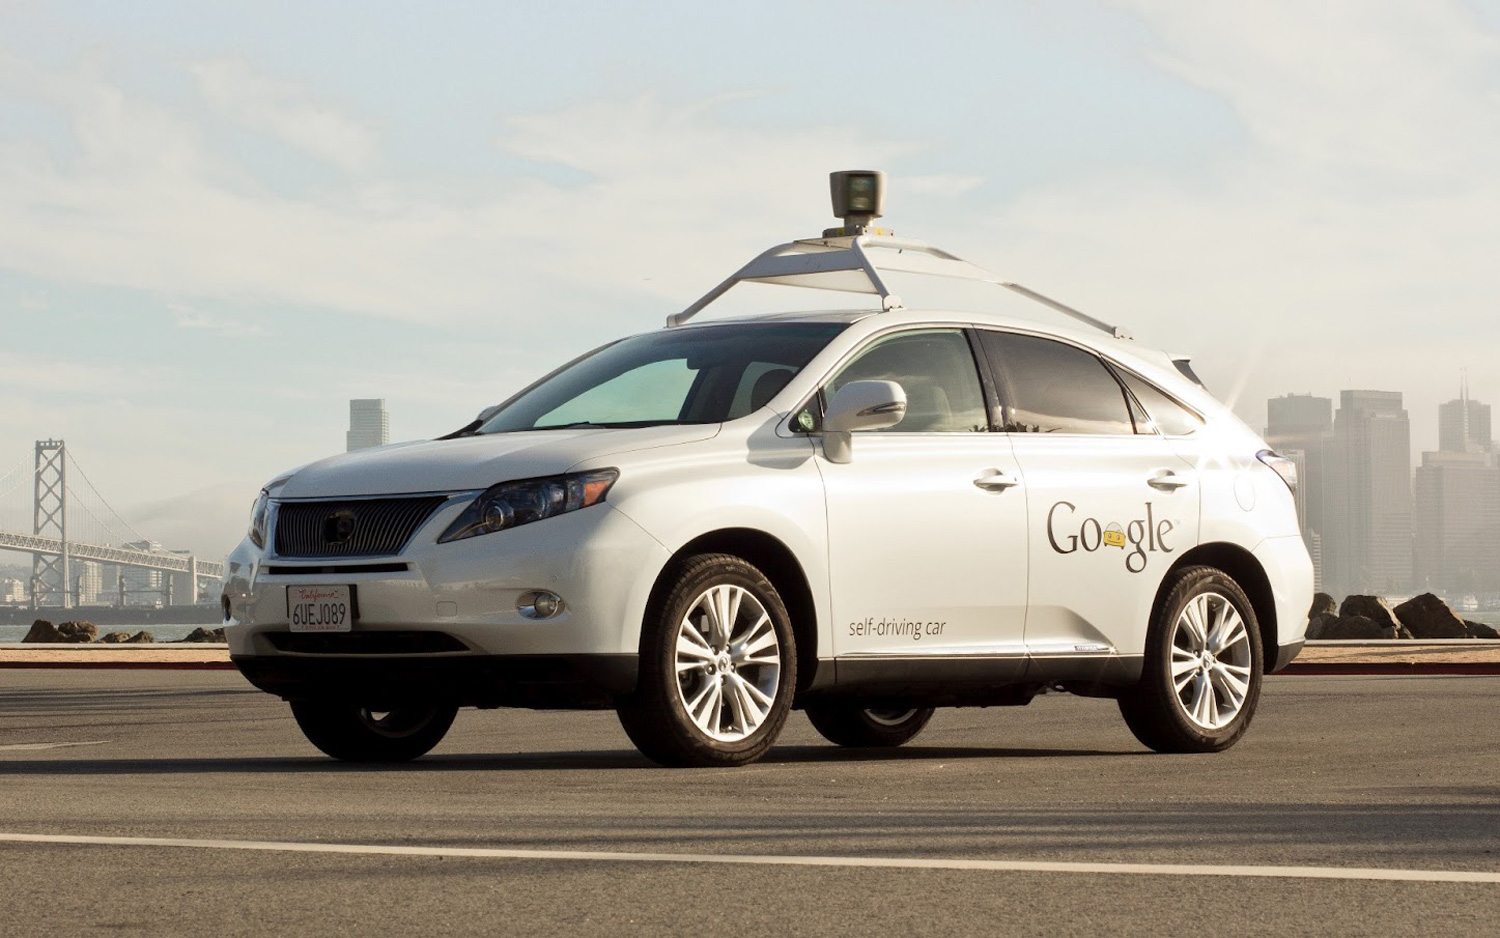 Google-Lexus-FX450h-autonomous-vehicle-1.jpg